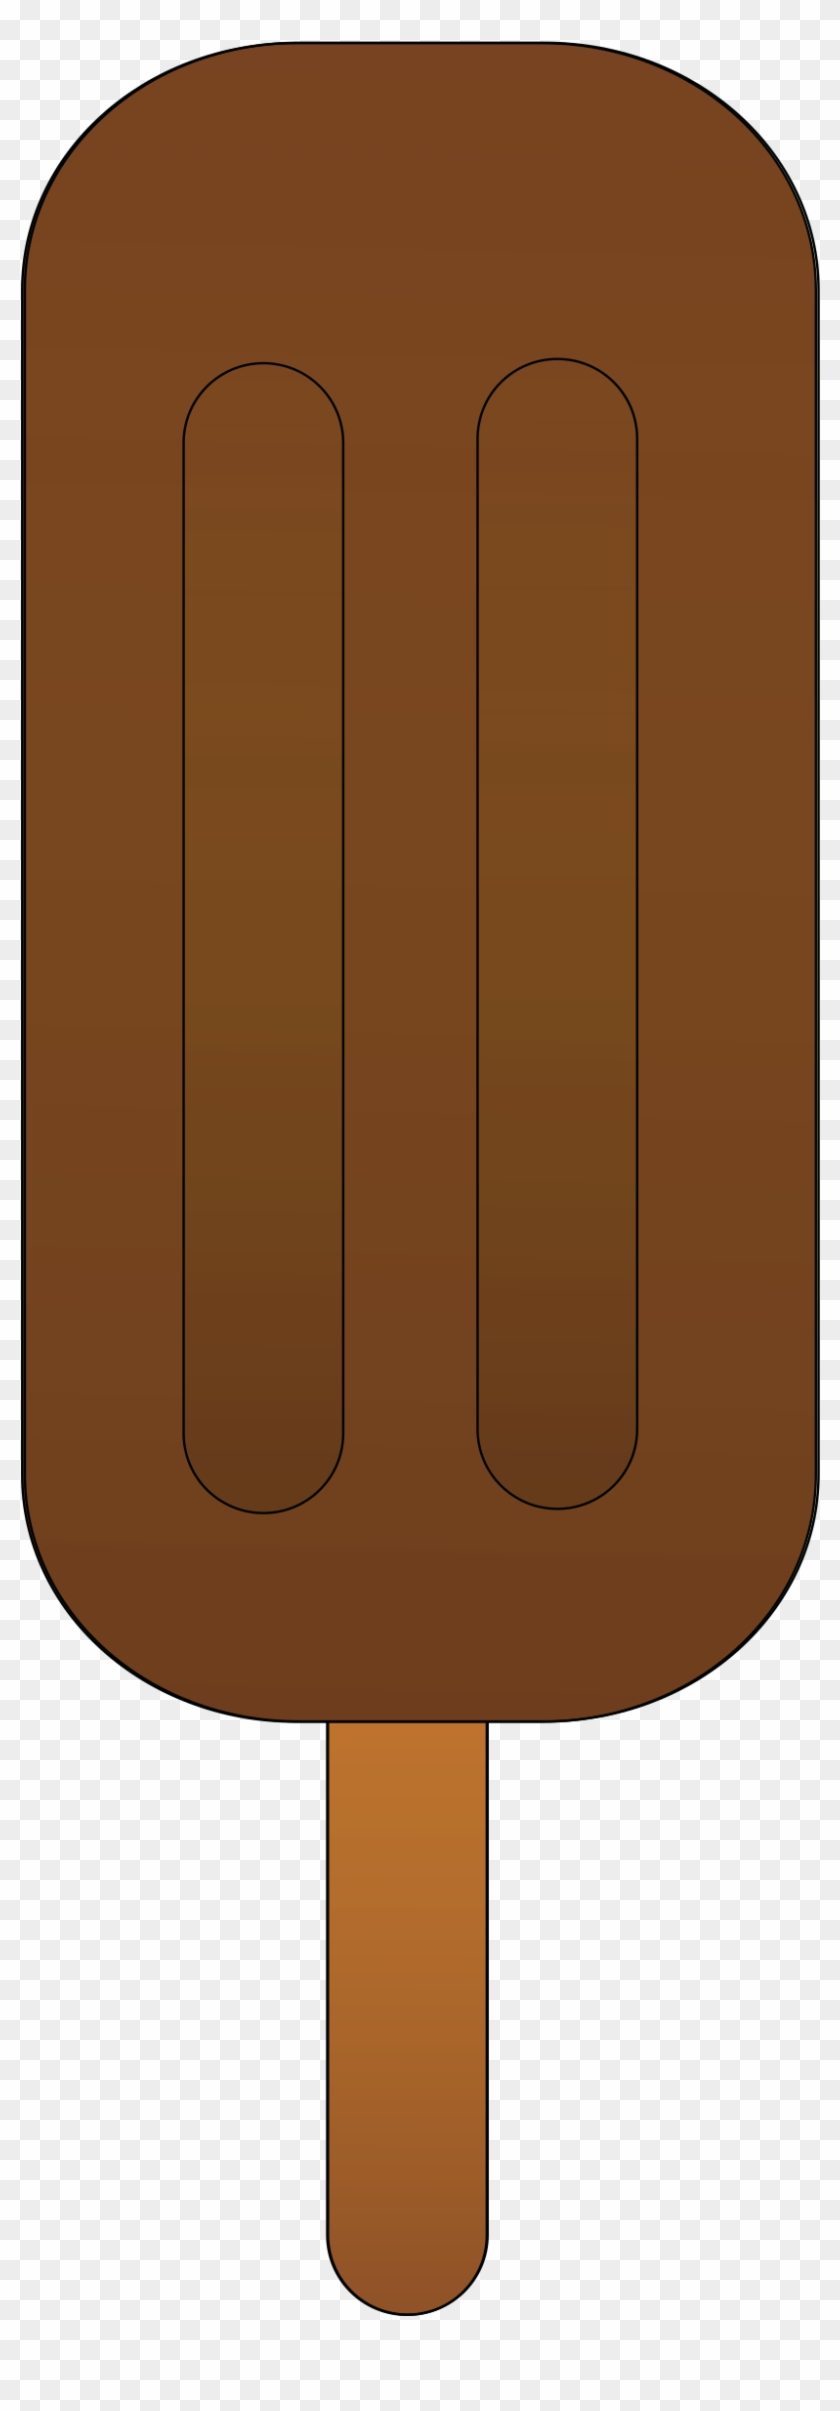 Chocolate Clipart Ice Pop - Chocolate Popsicle Clipart #172109